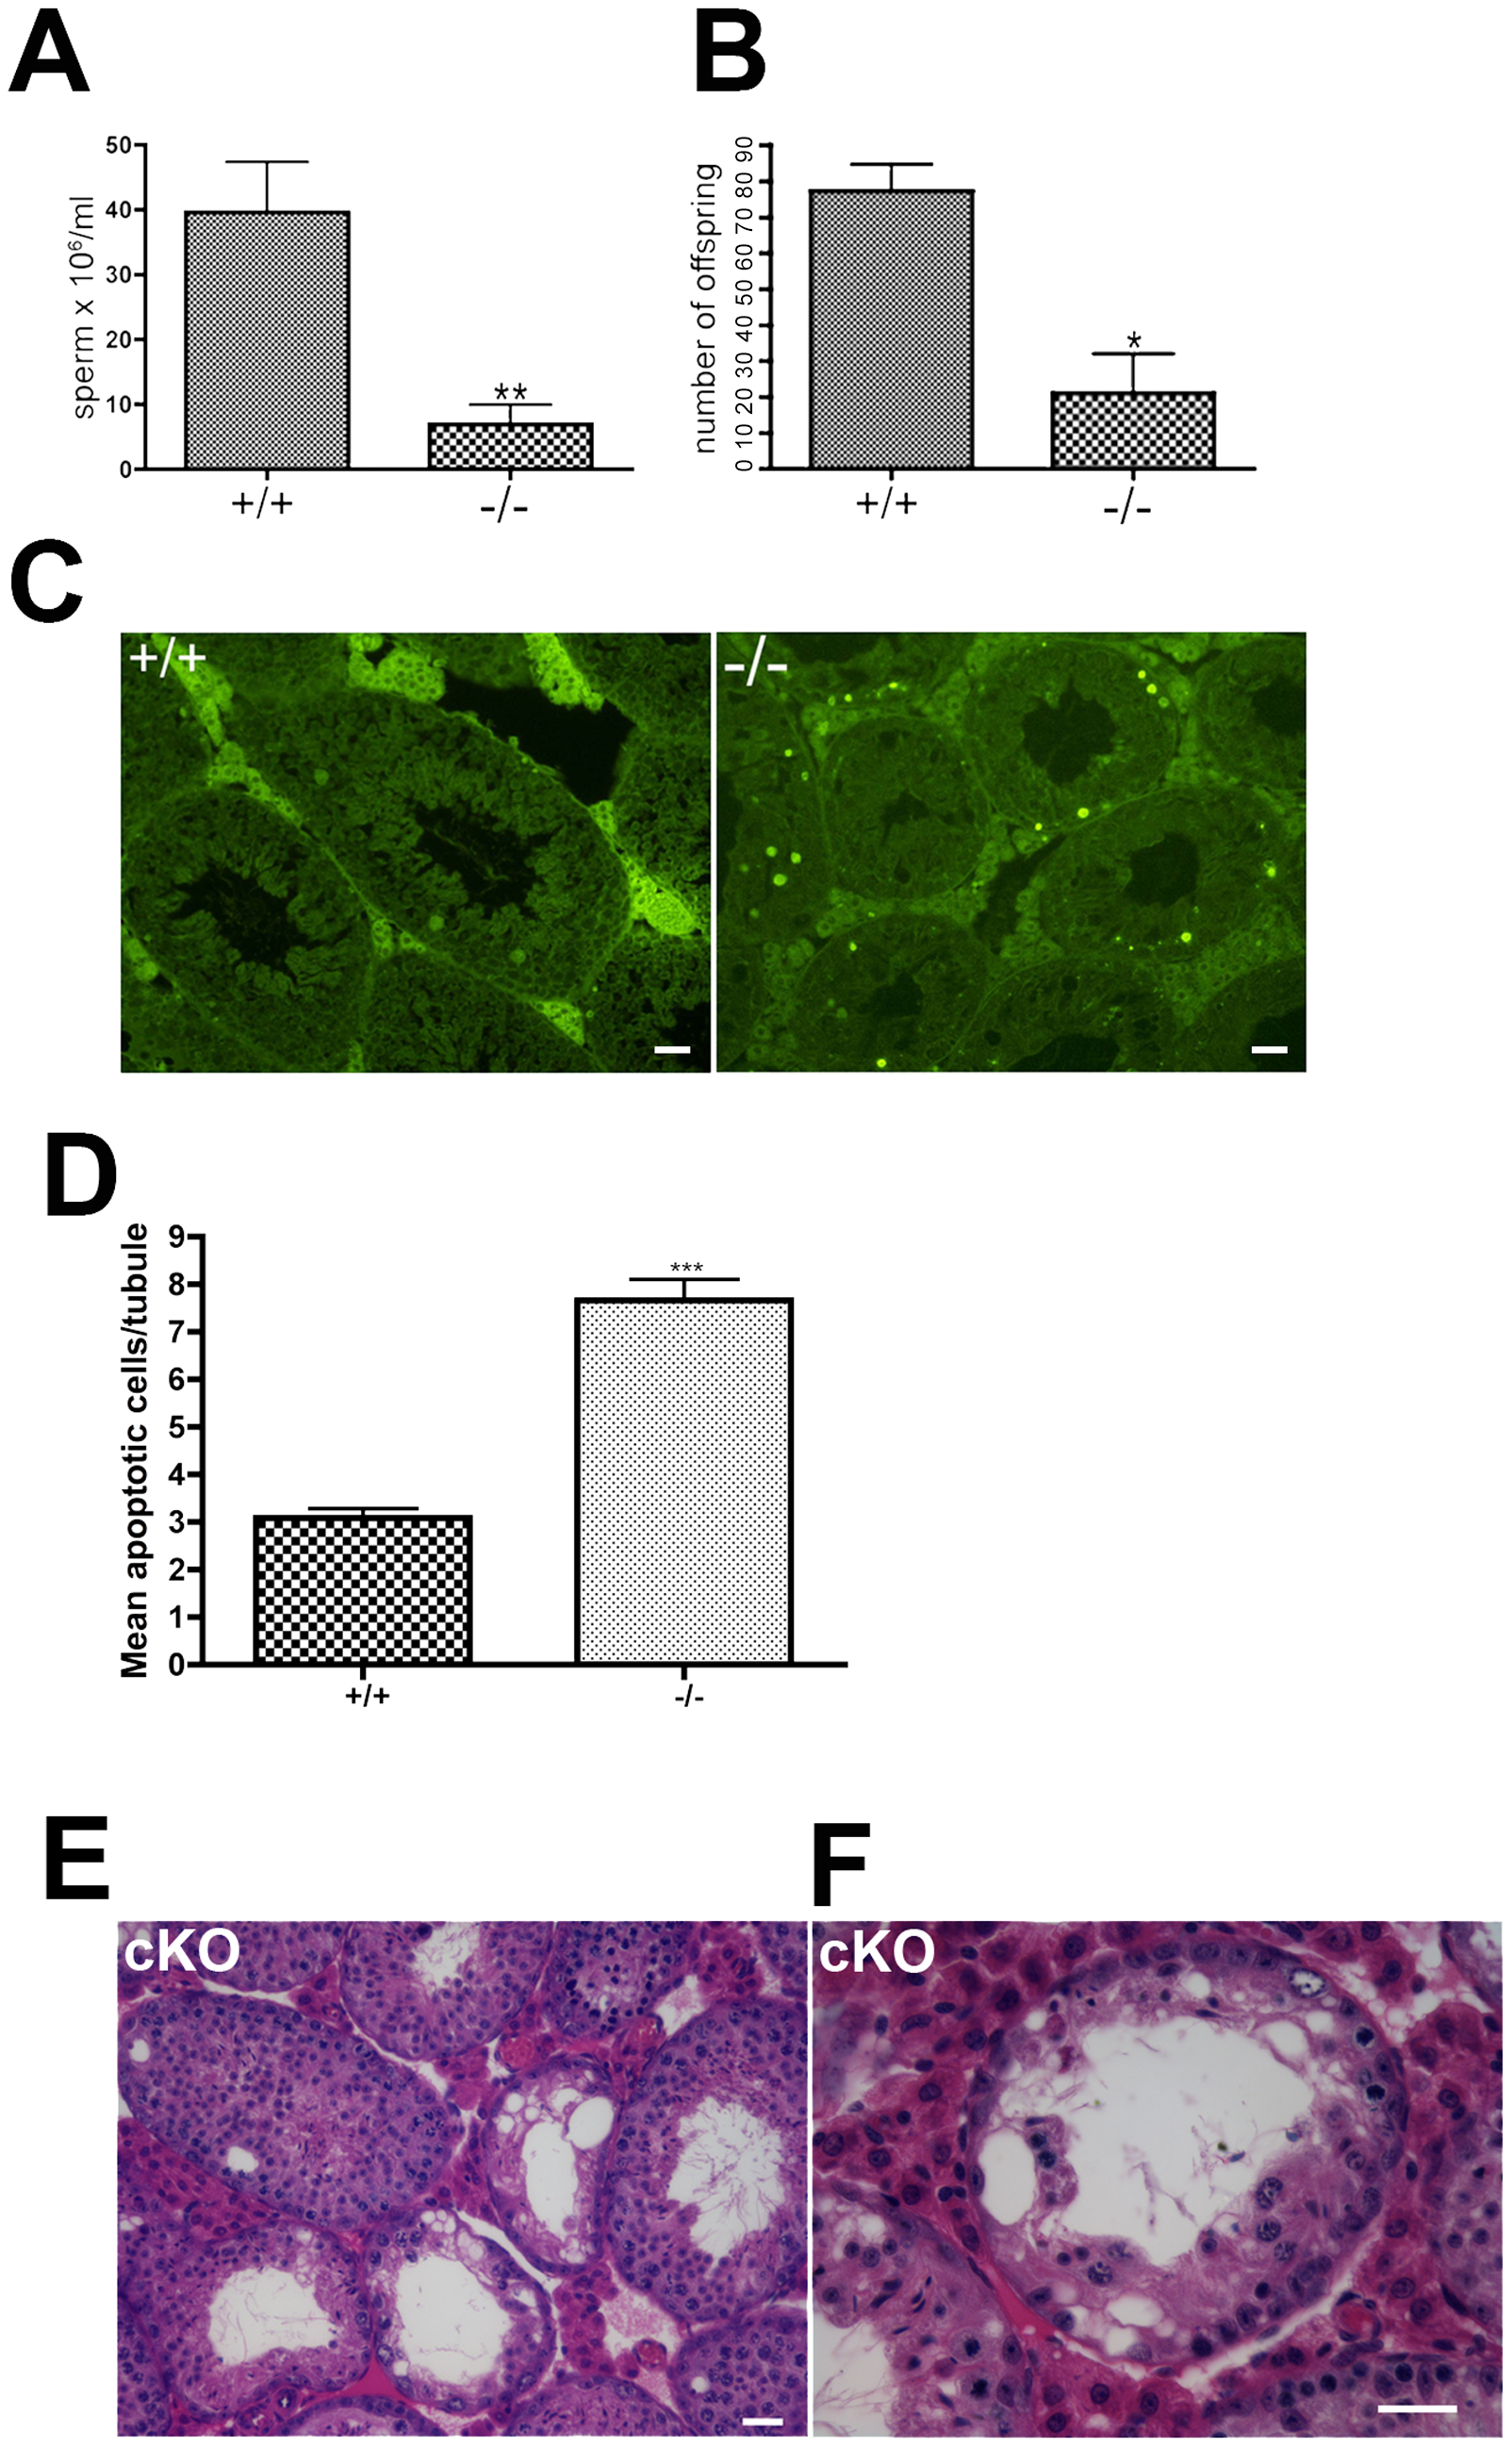 Oligospermia and decreased fertility in <i>Chtf18</i>-null mice.